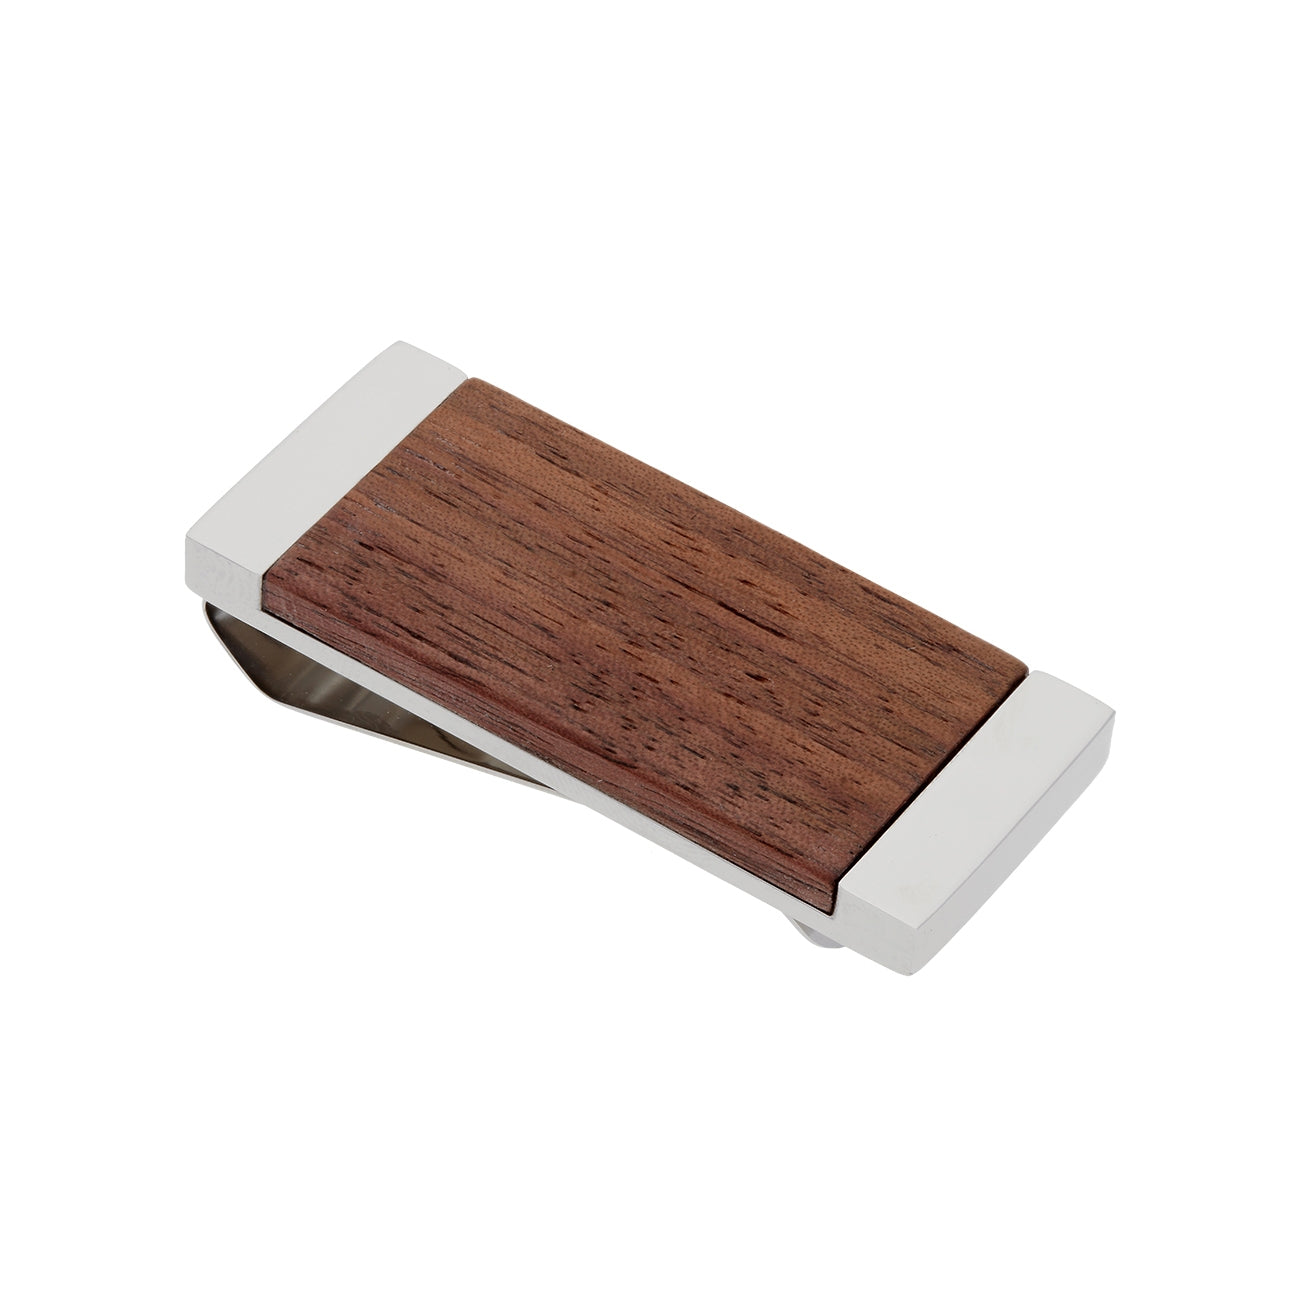 Walnut Wood Money Clip, Stainless Steel